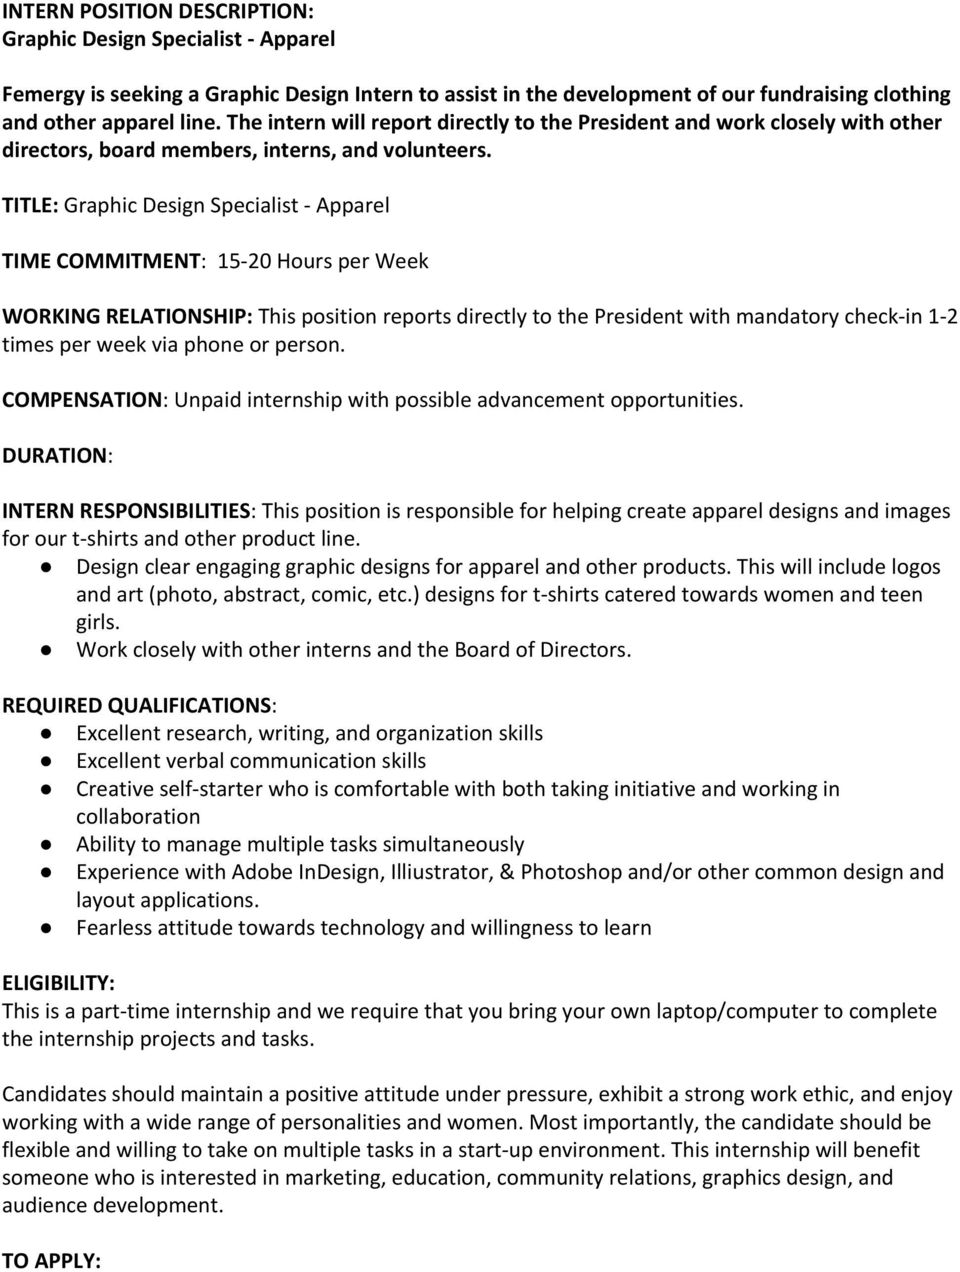 TITLE: Graphic Design Specialist - Apparel INTERN RESPONSIBILITIES : This position is responsible for helping create apparel designs and images for our t-shirts and other product line.